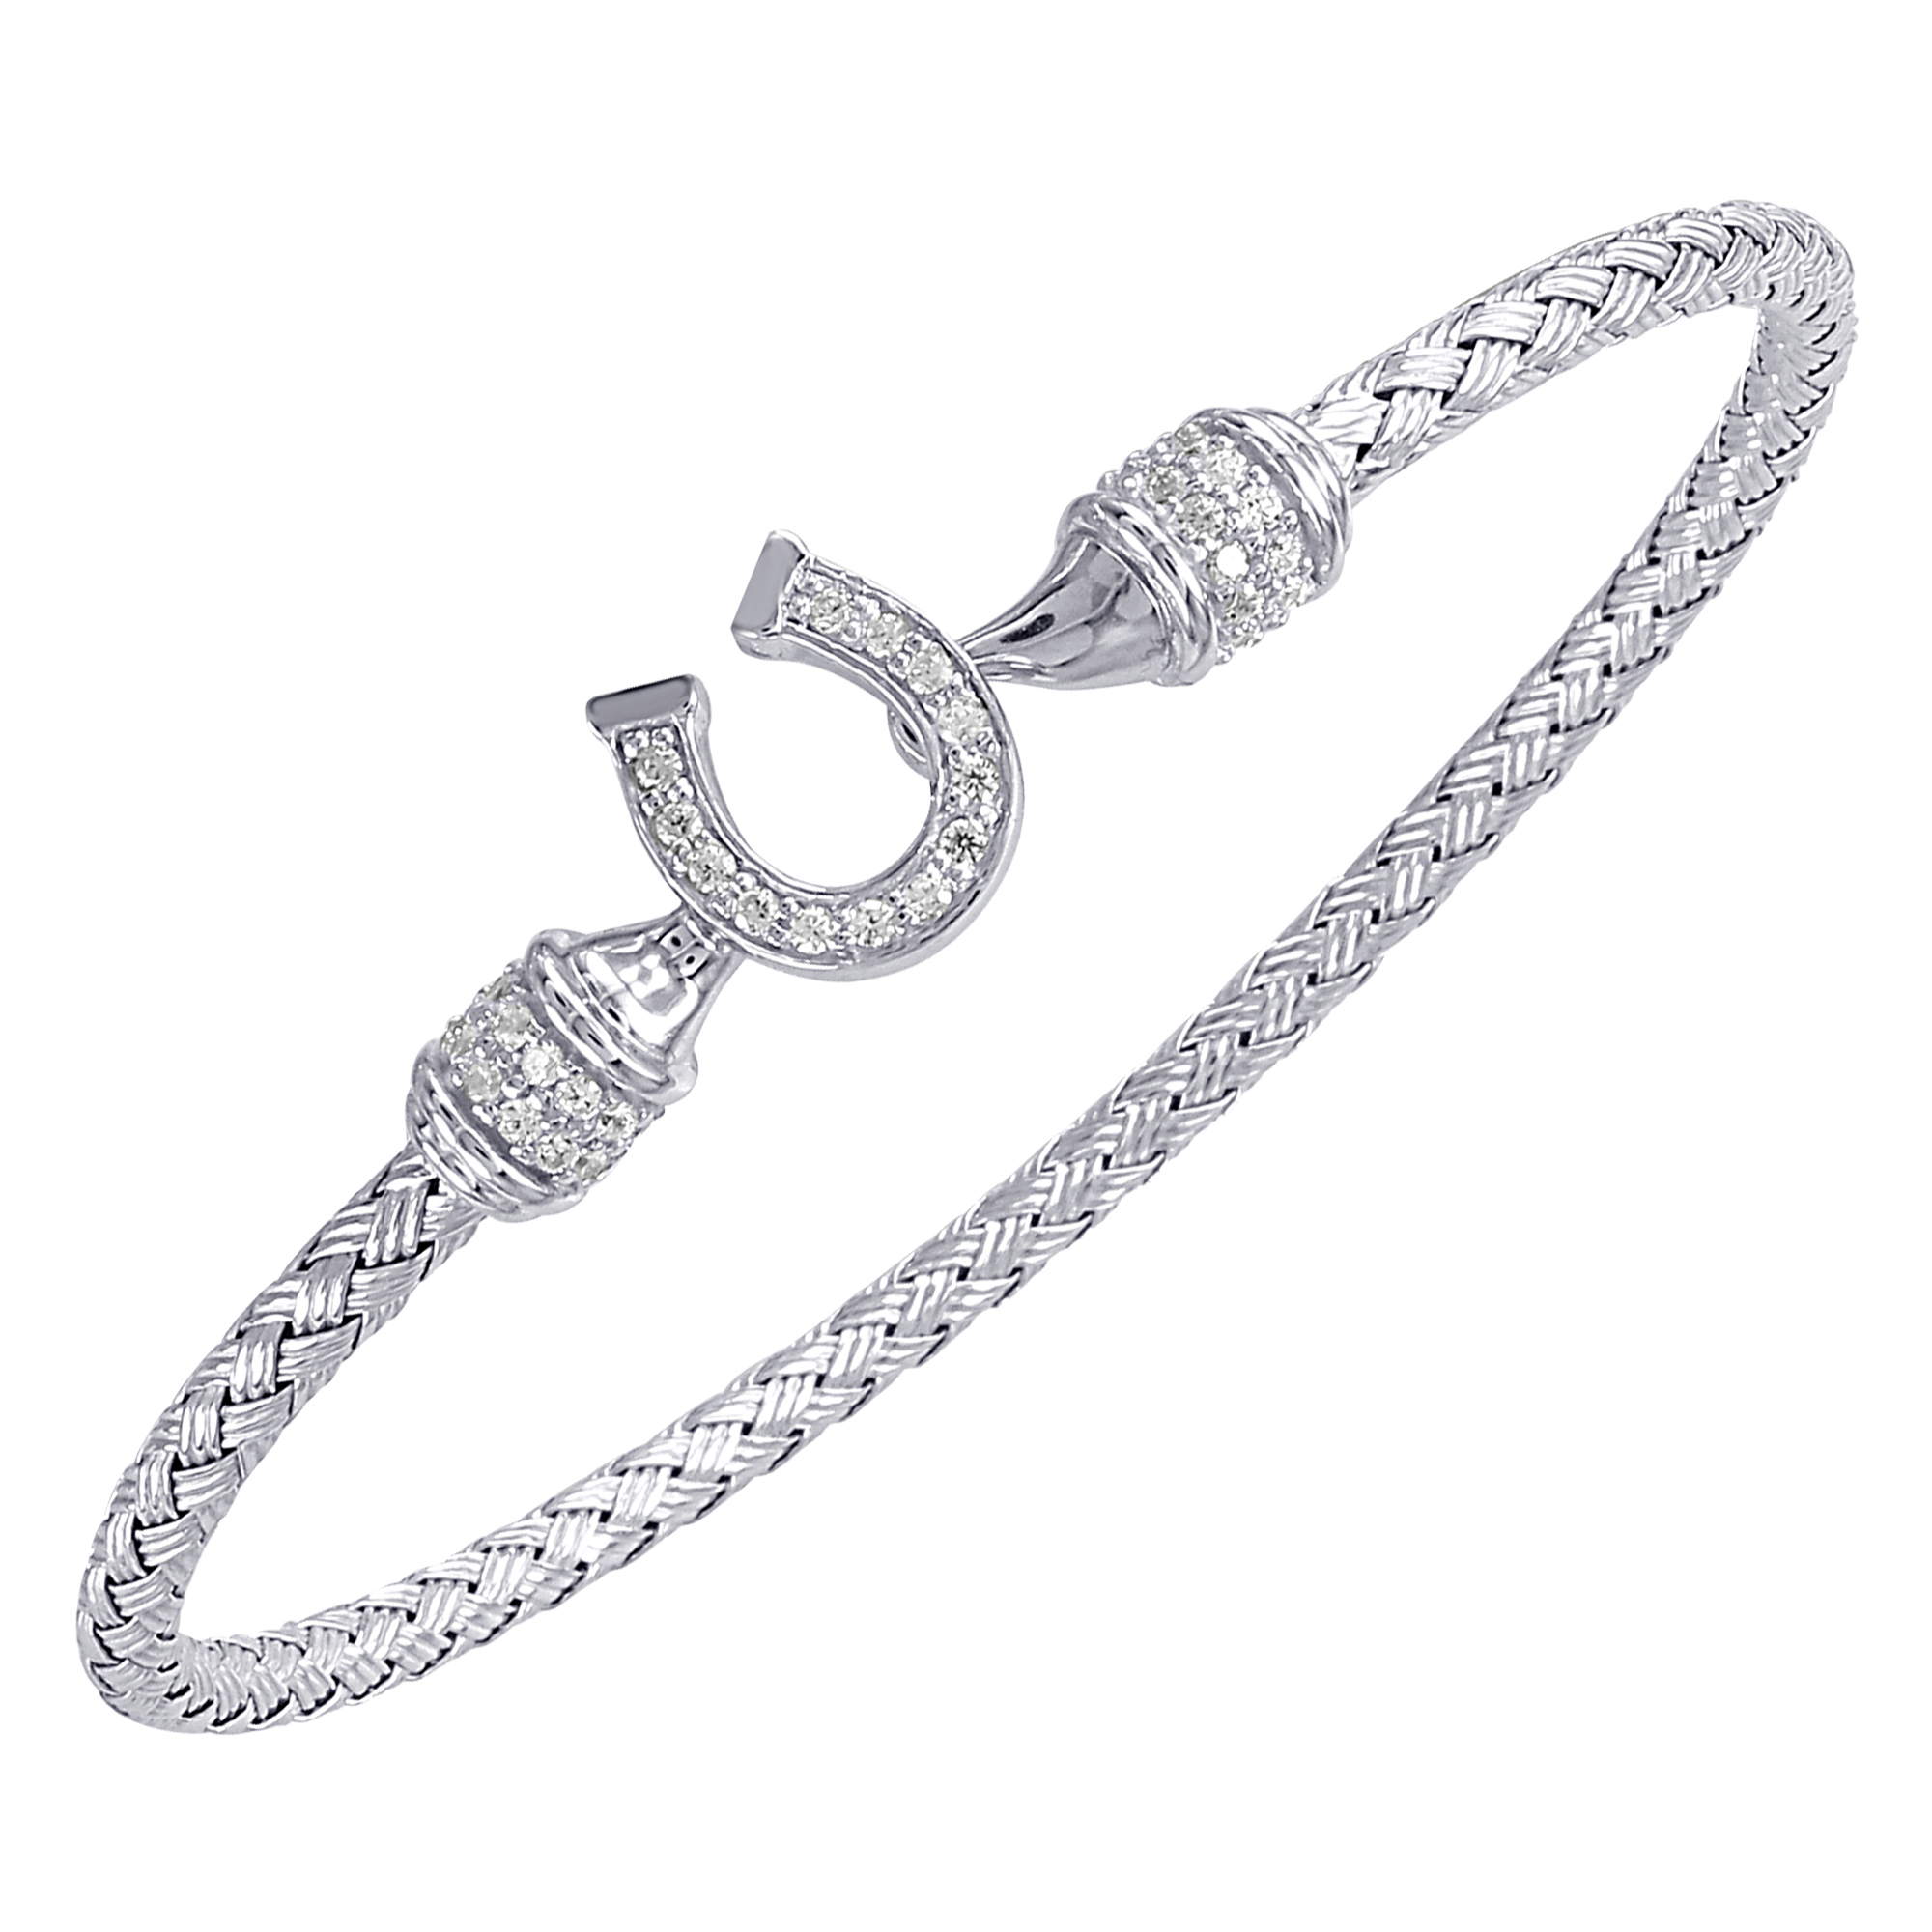 CHARLES GARNIER - Sterling Silver and CZ Horse Shoe Cuff Bangle